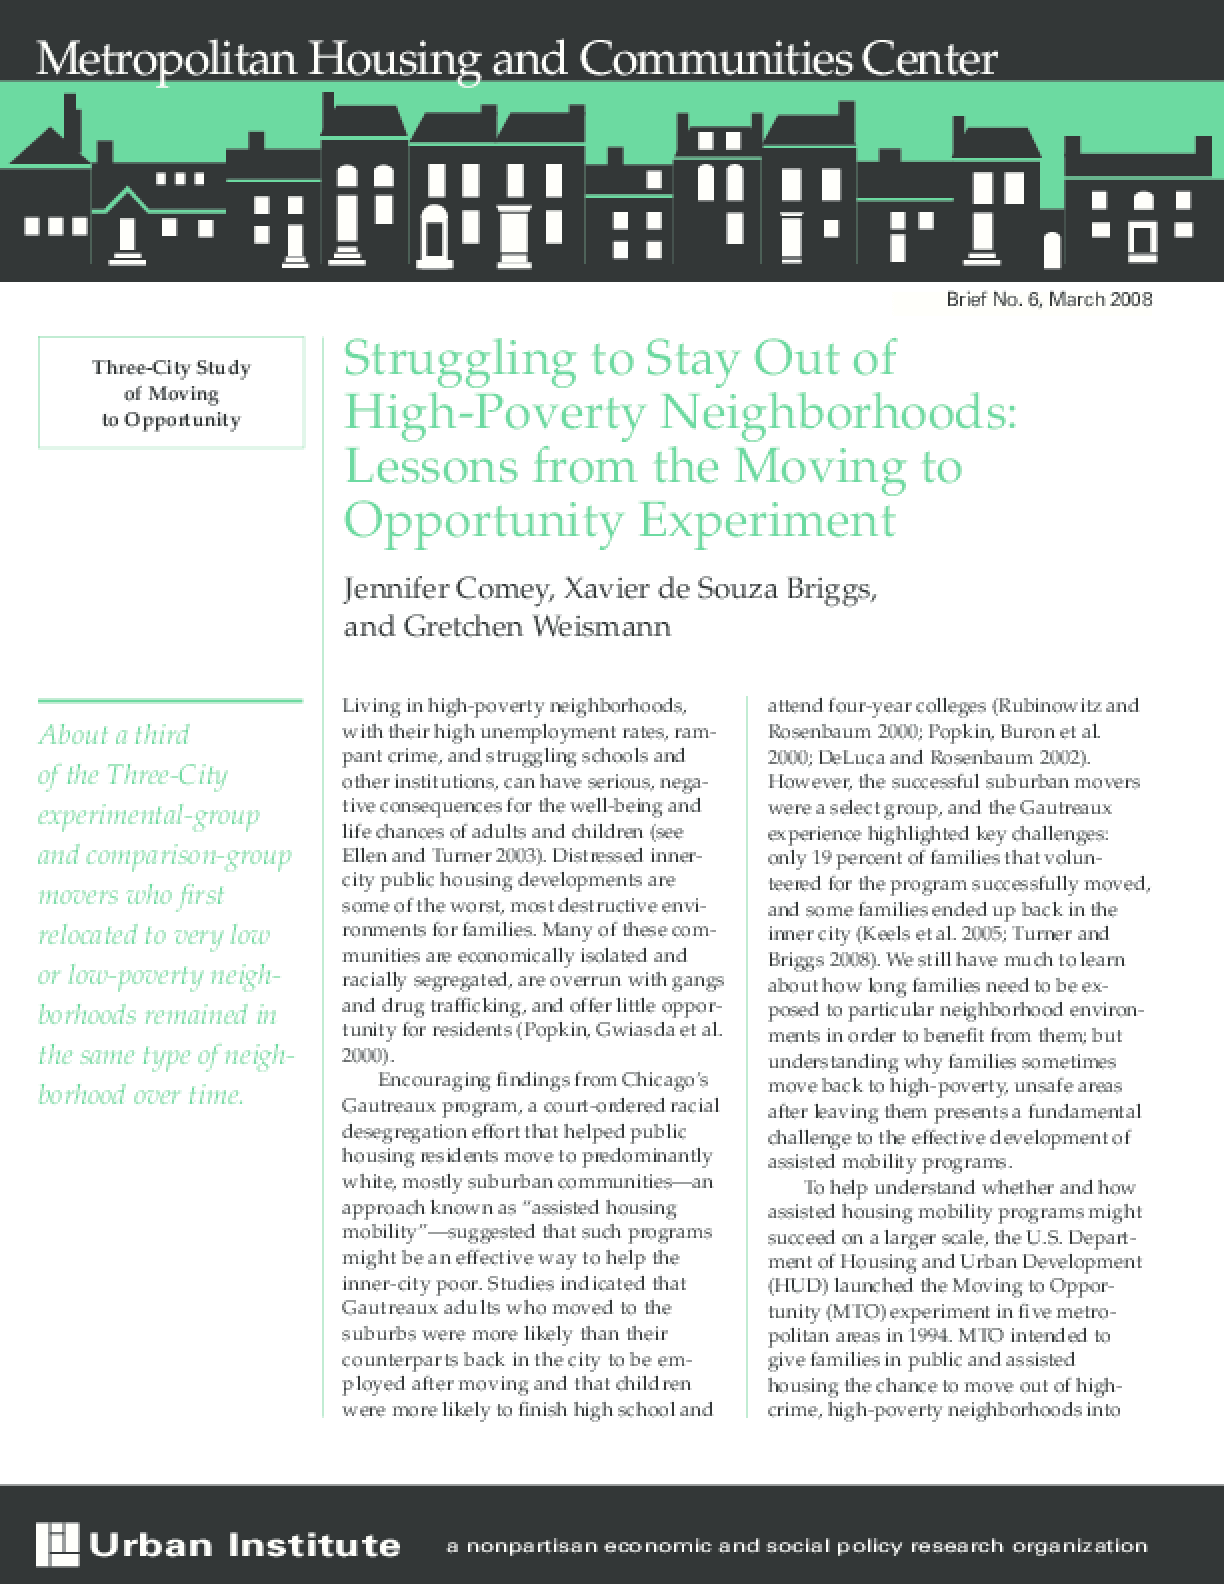 Struggling to Stay Out of High-Poverty Neighborhoods: Lessons From the Moving to Opportunity Experiment